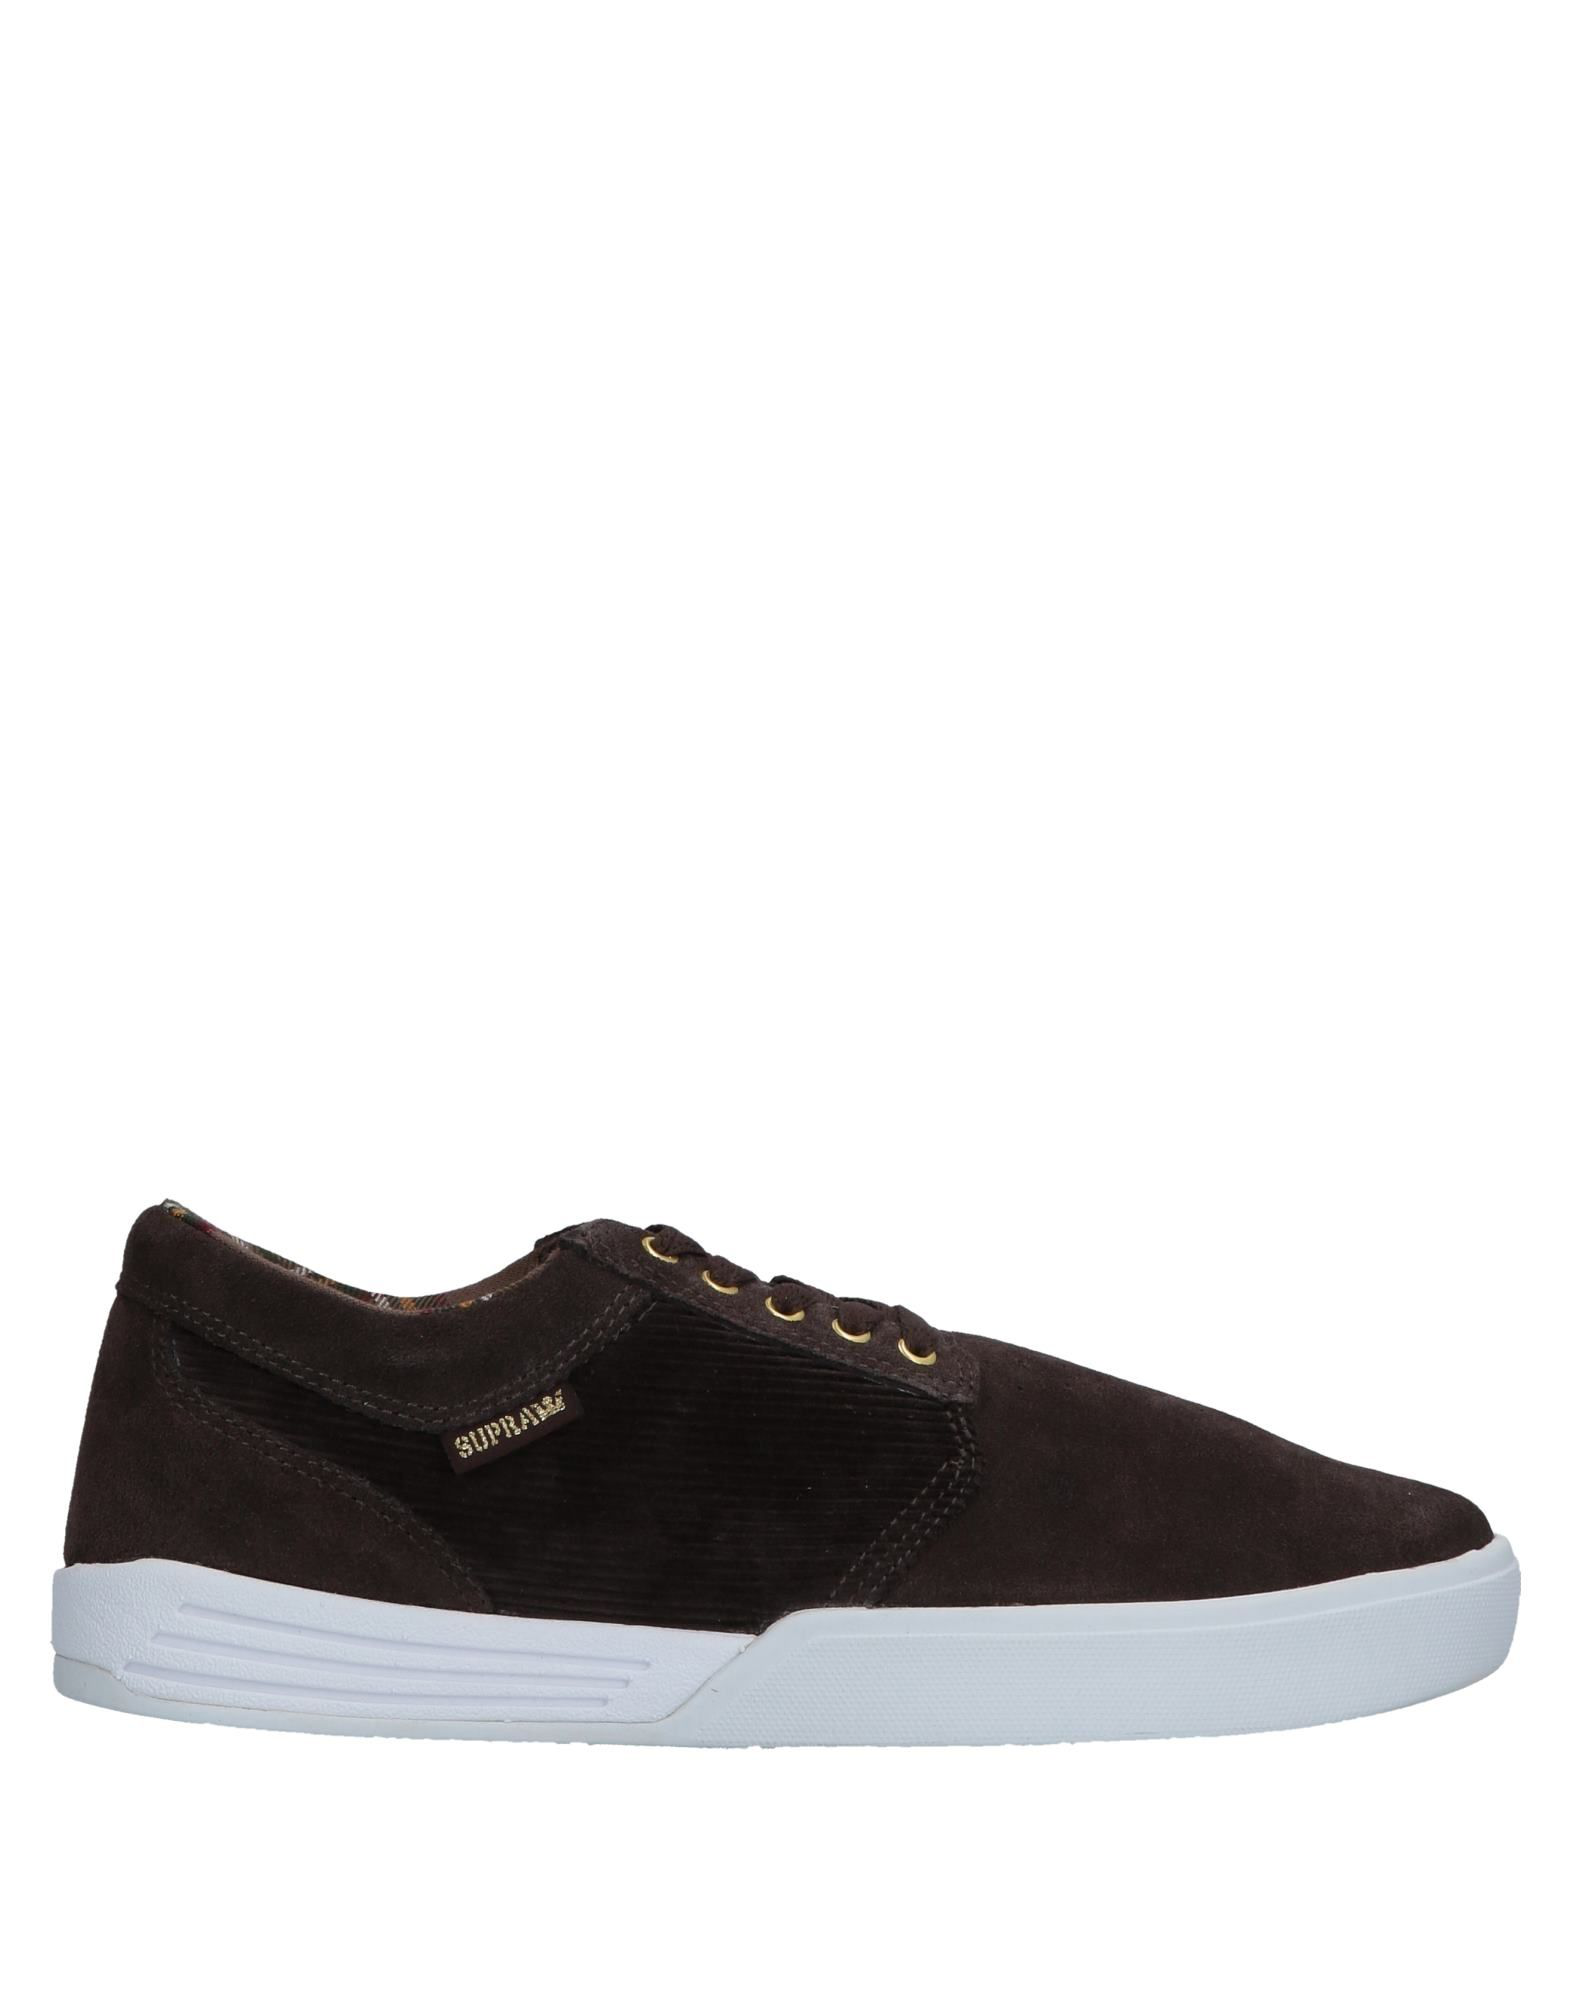 39dc27783f Supra Sneakers In Dark Brown | ModeSens